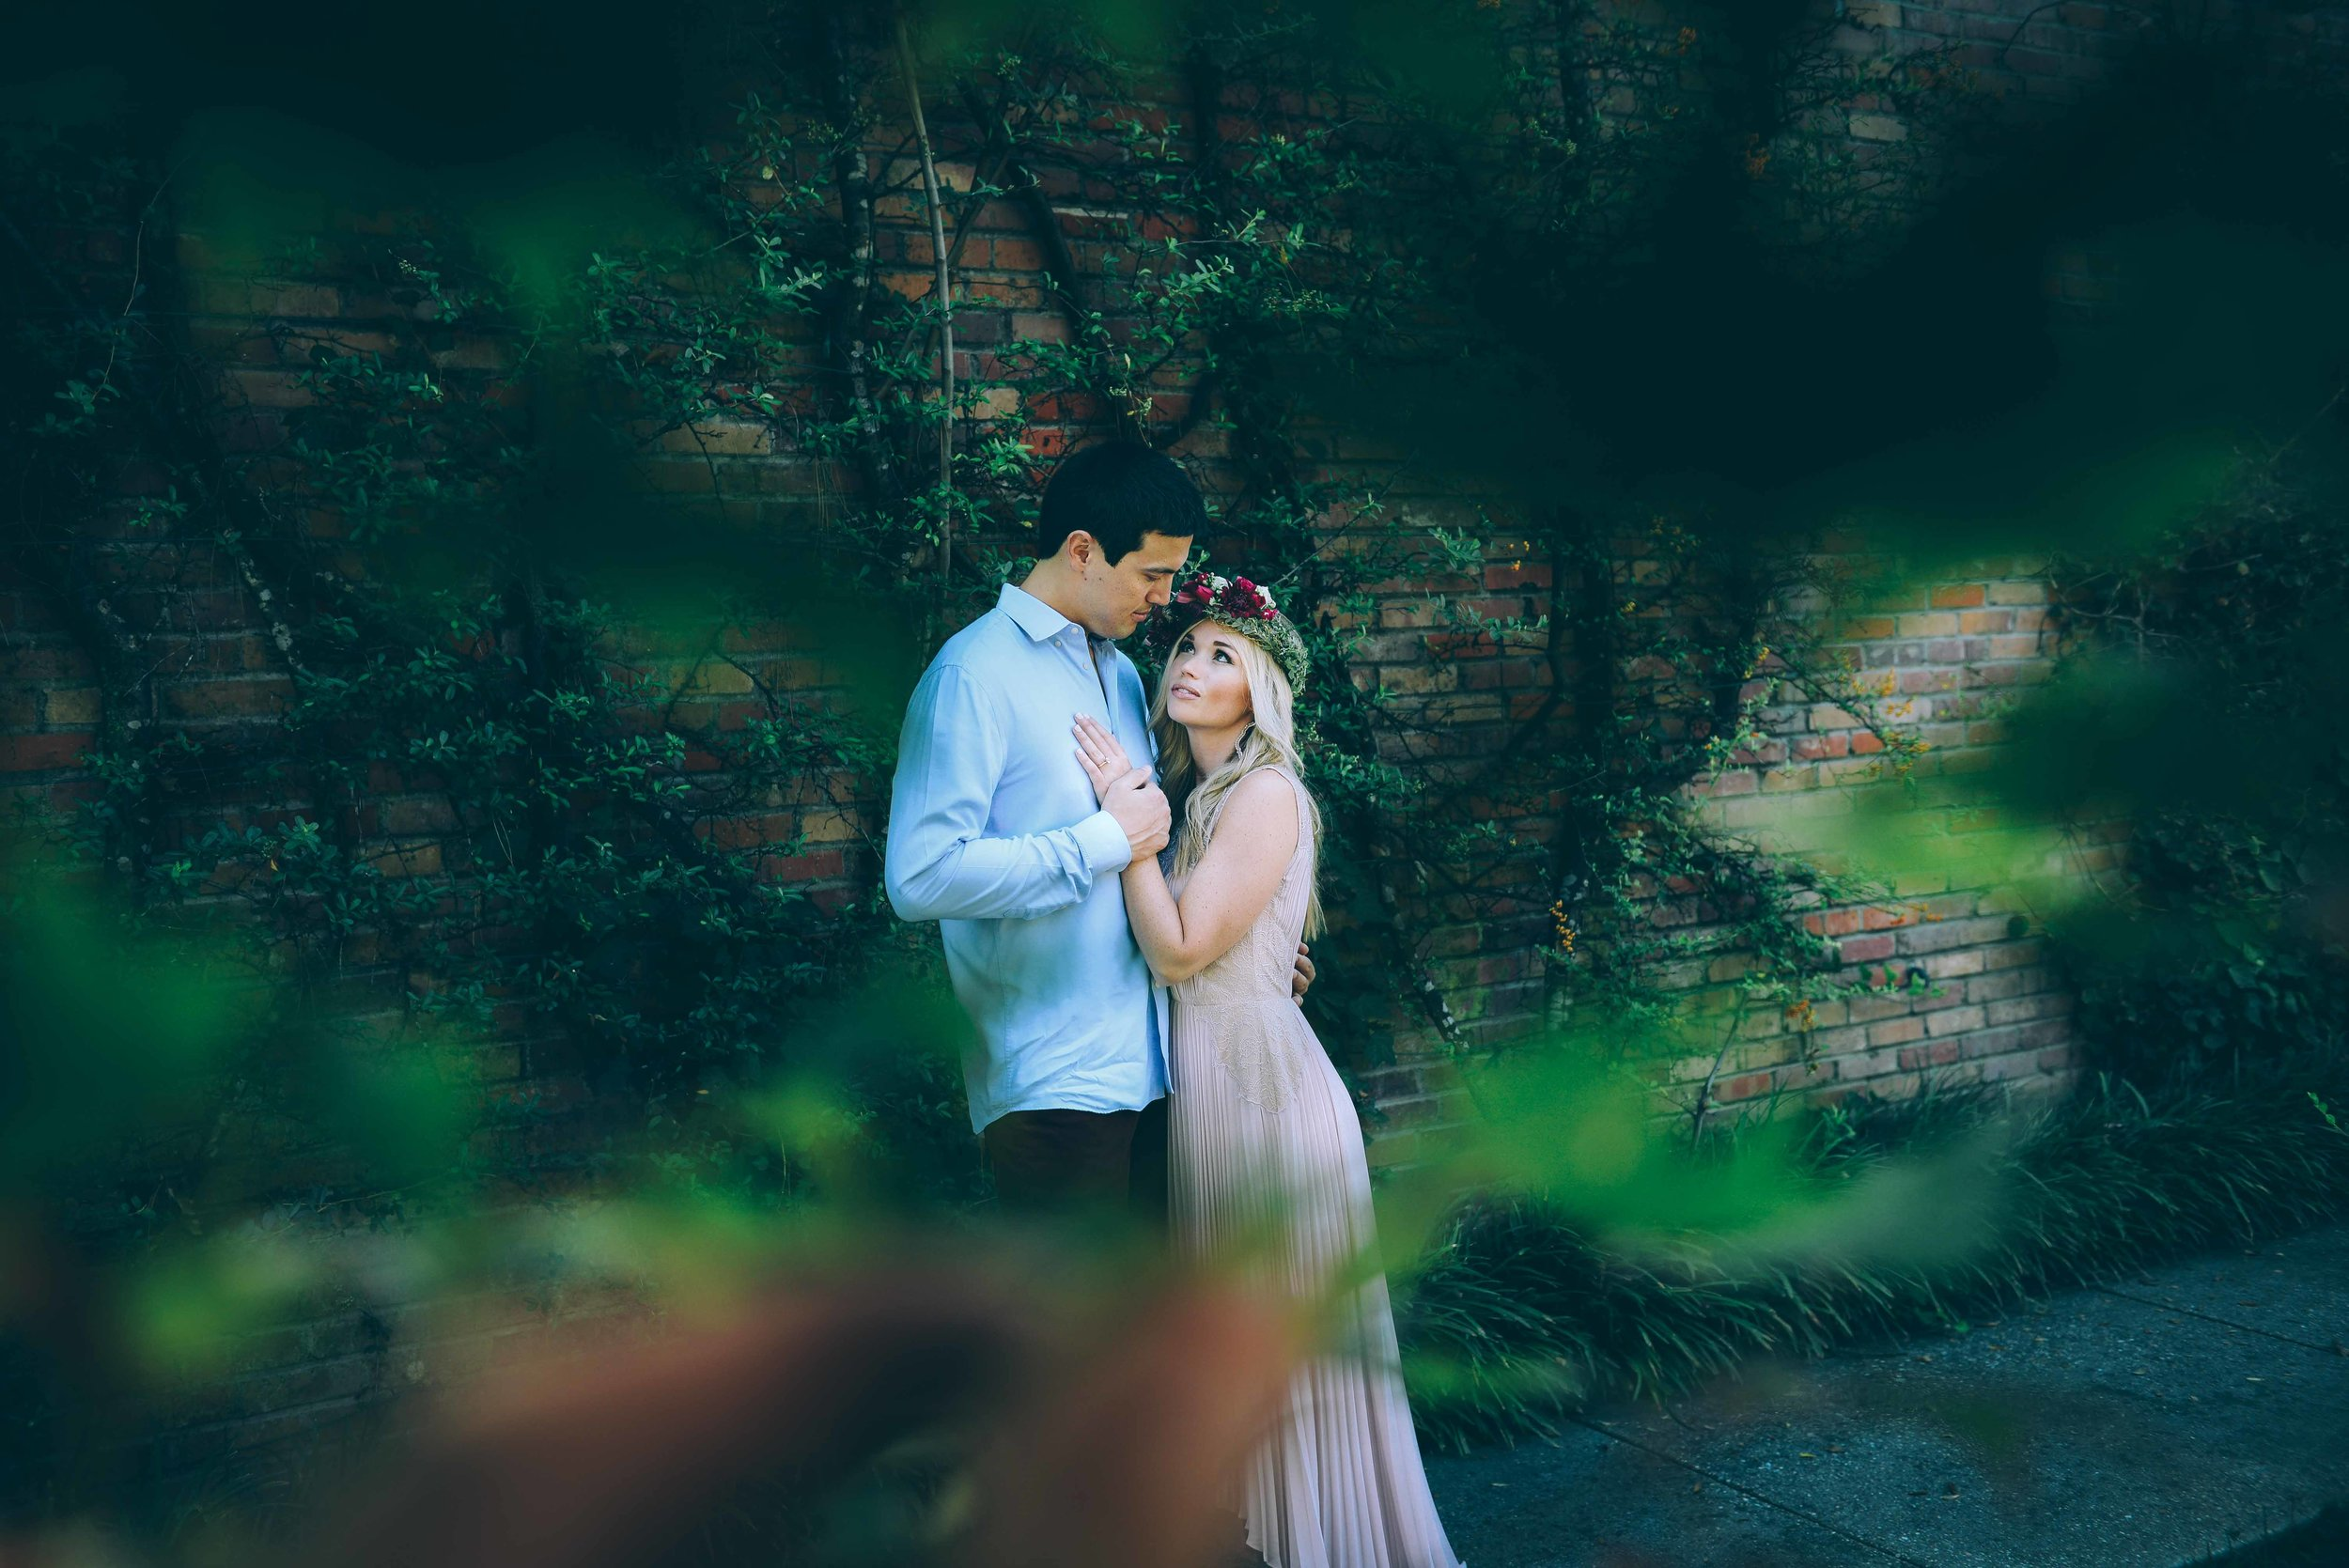 engaged couple standing in front of wall with green vines